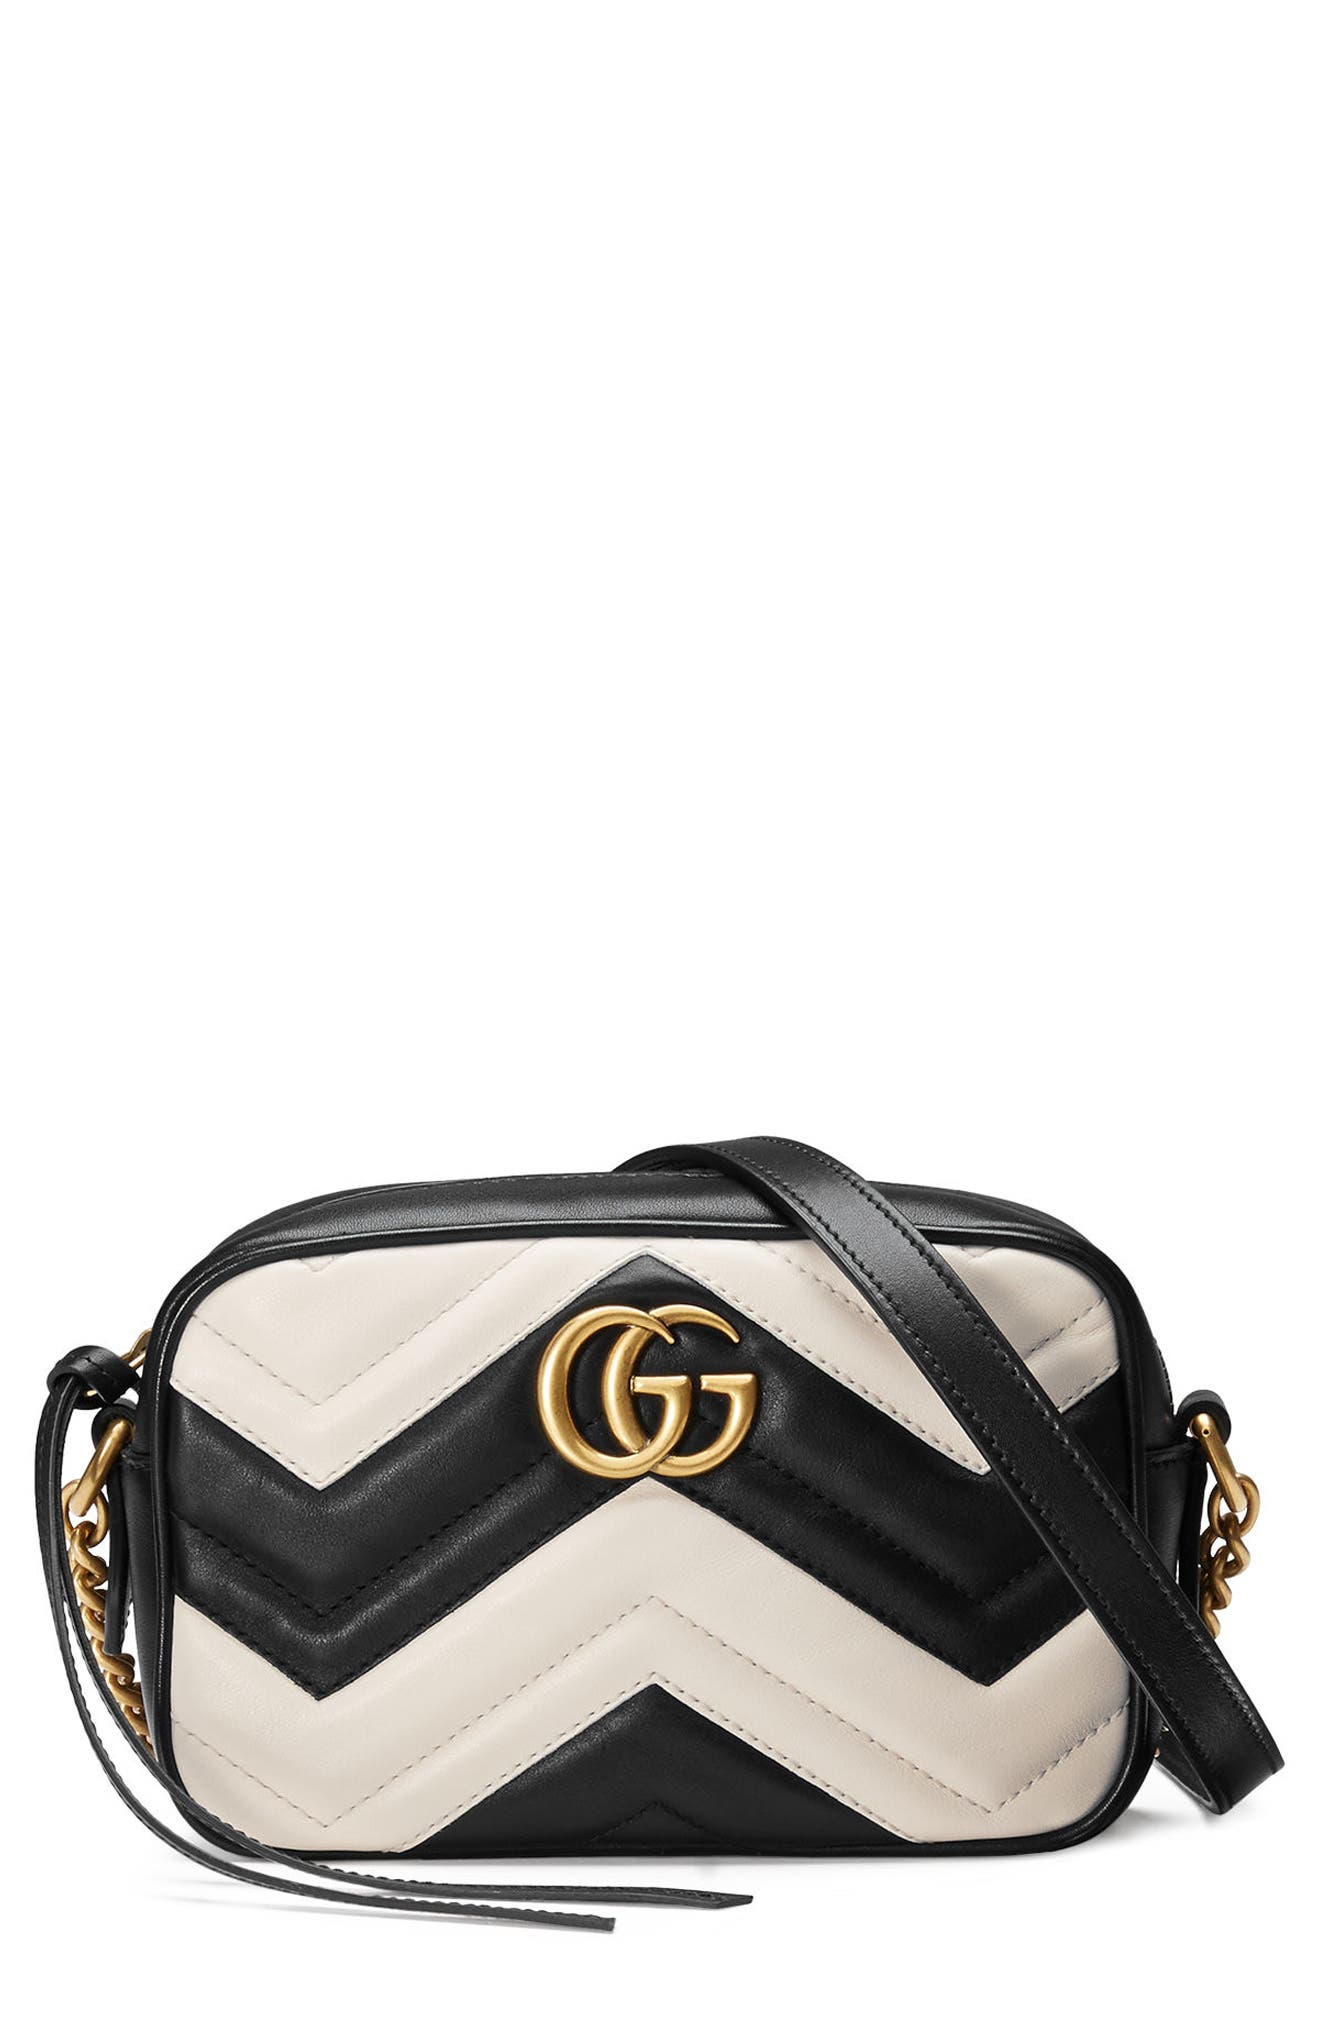 Gucci Mini GG Marmont Matelassé Leather Shoulder Bag